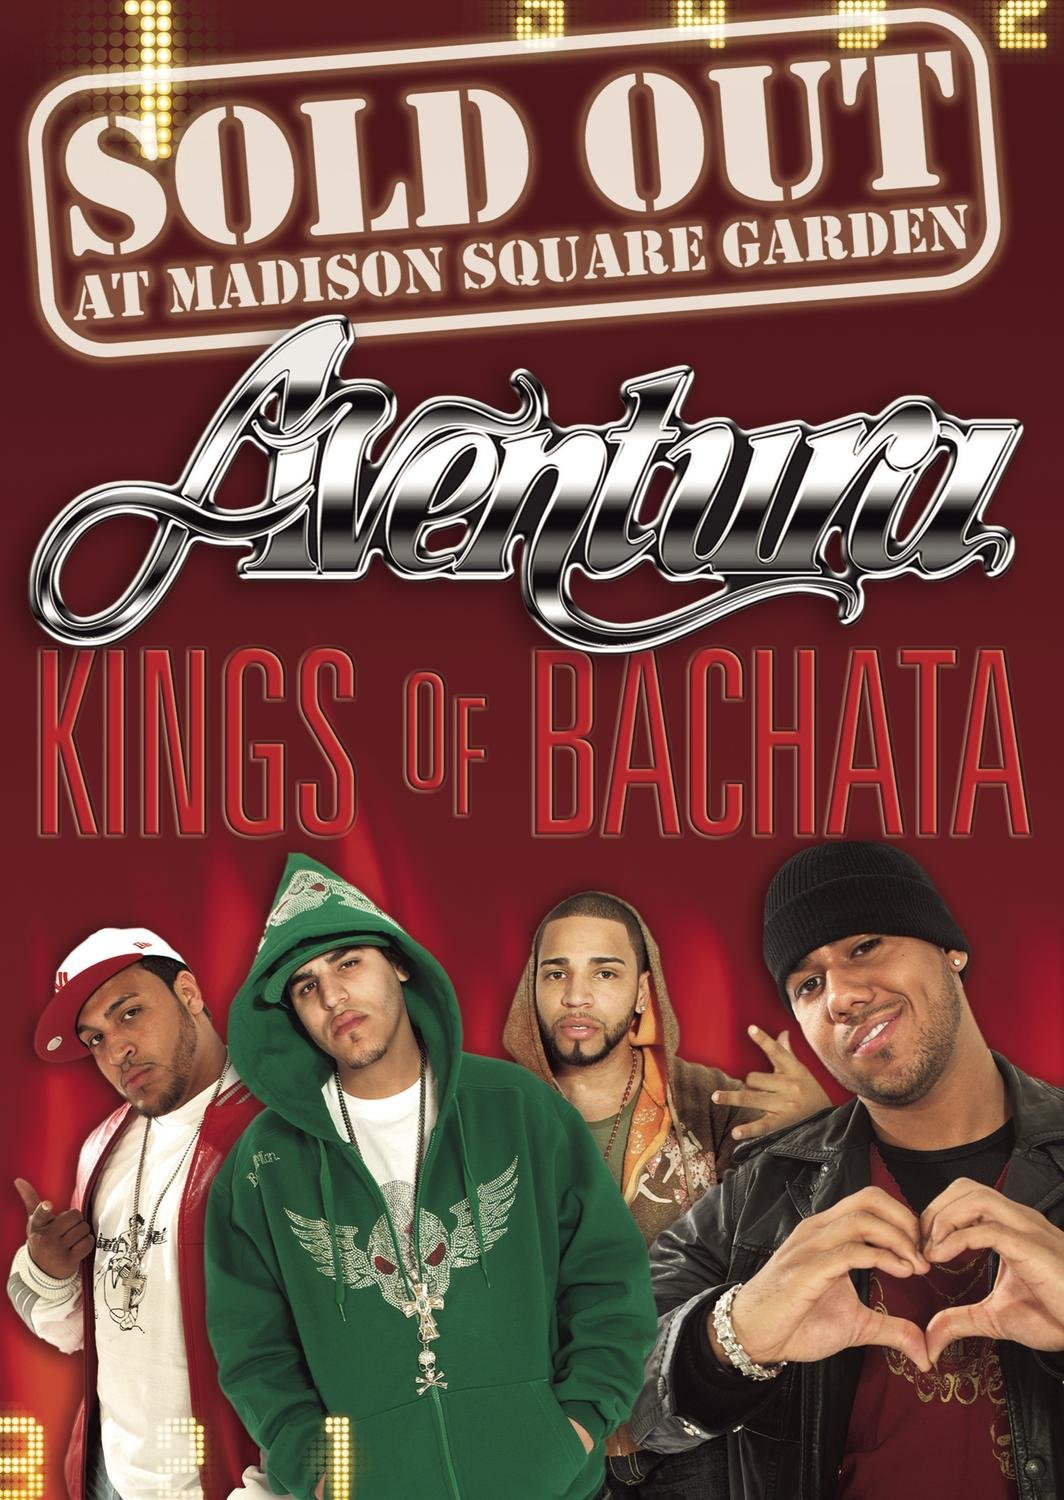 Sold Out At Madison Square Garden by Sony U.S. Latin